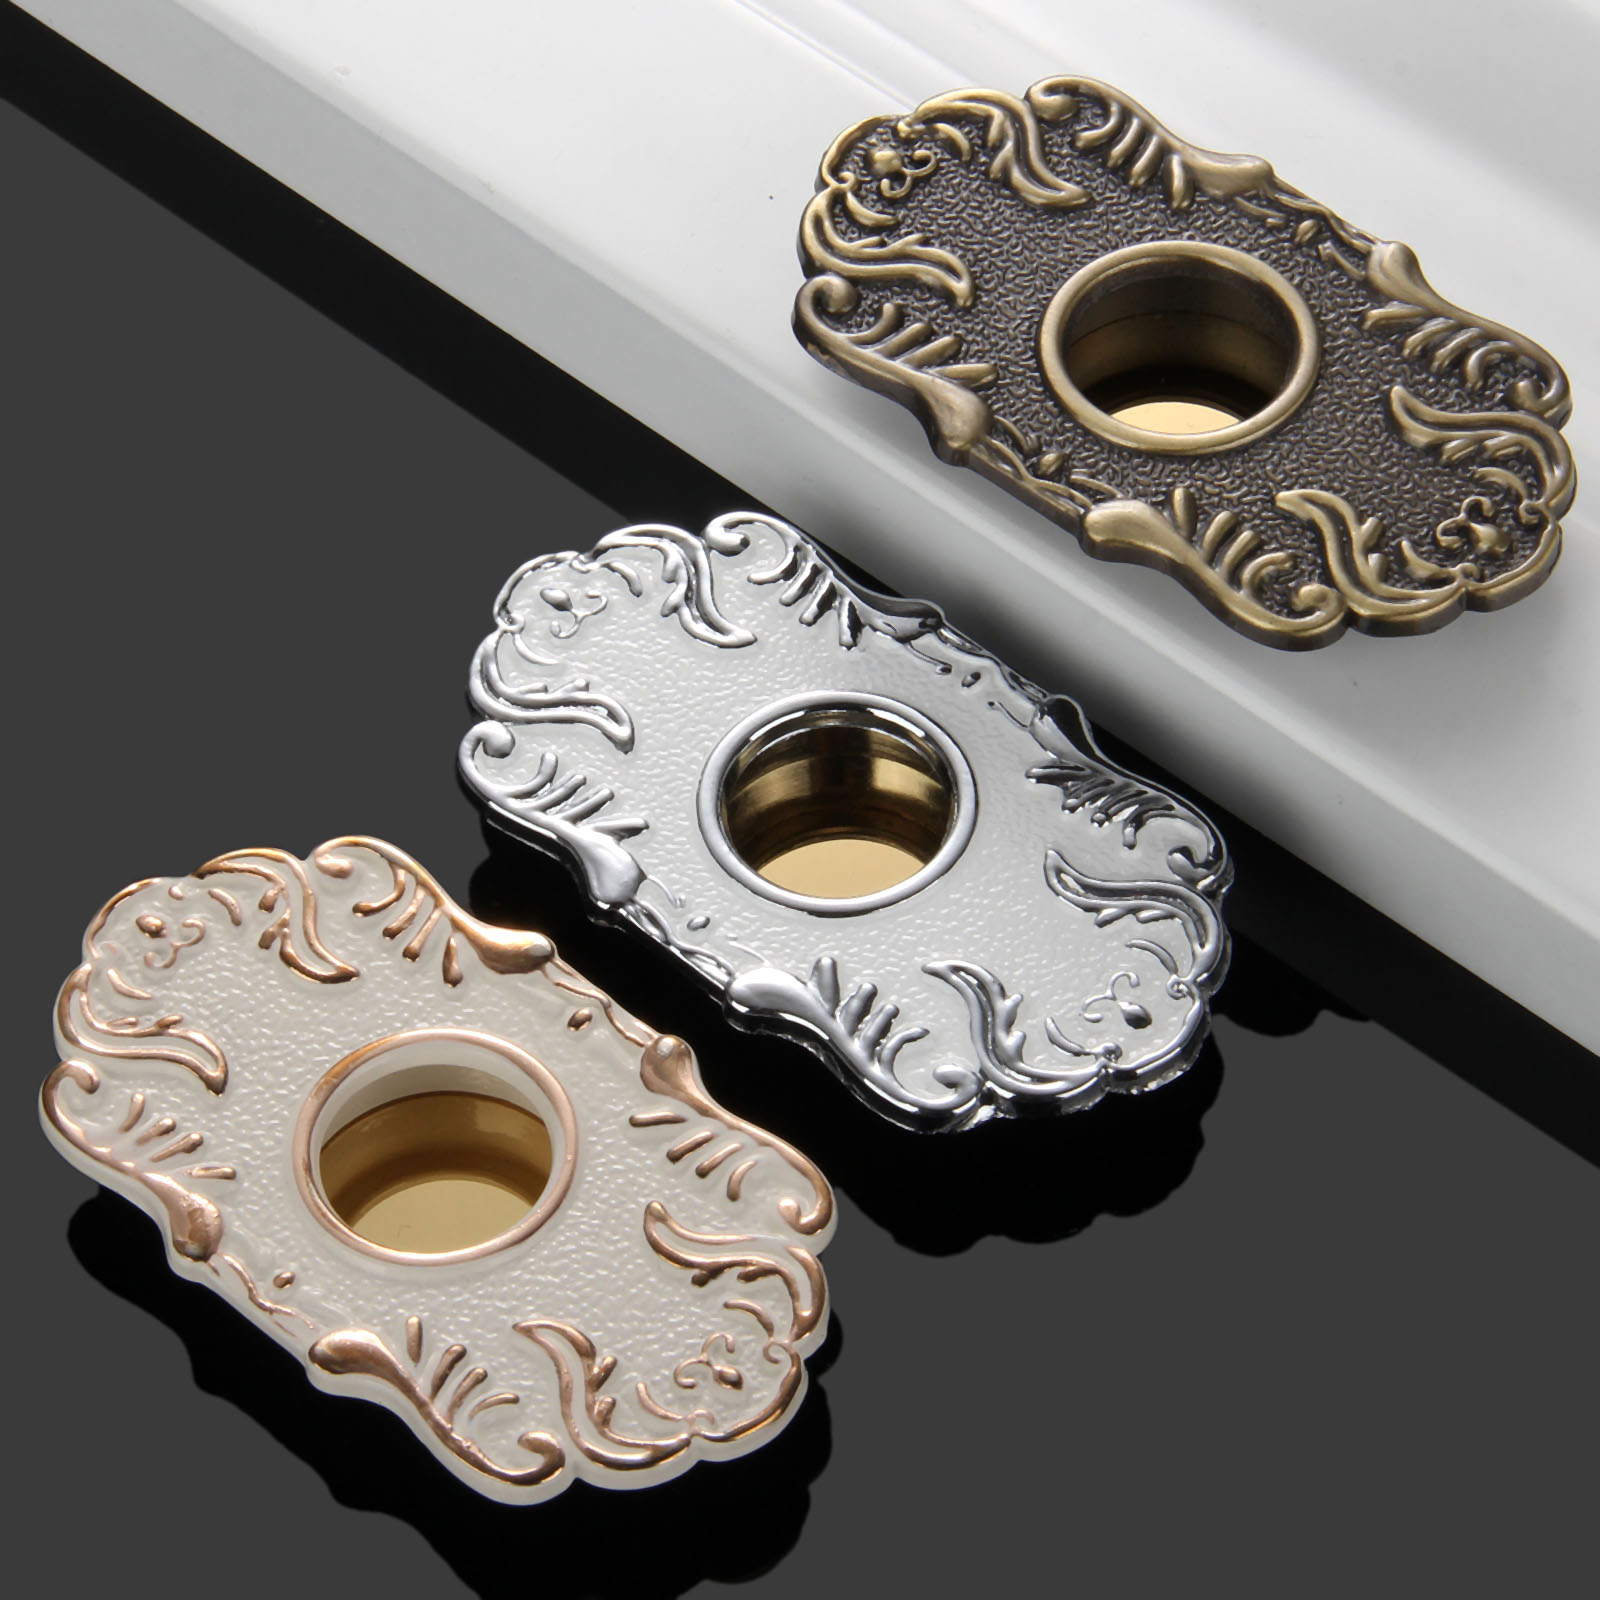 32mm Furniture Handles Cabinet Knobs and Handles Sliding Door Knob Drawer Hidden Recessed Flush Pull Handles Furniture Fittings